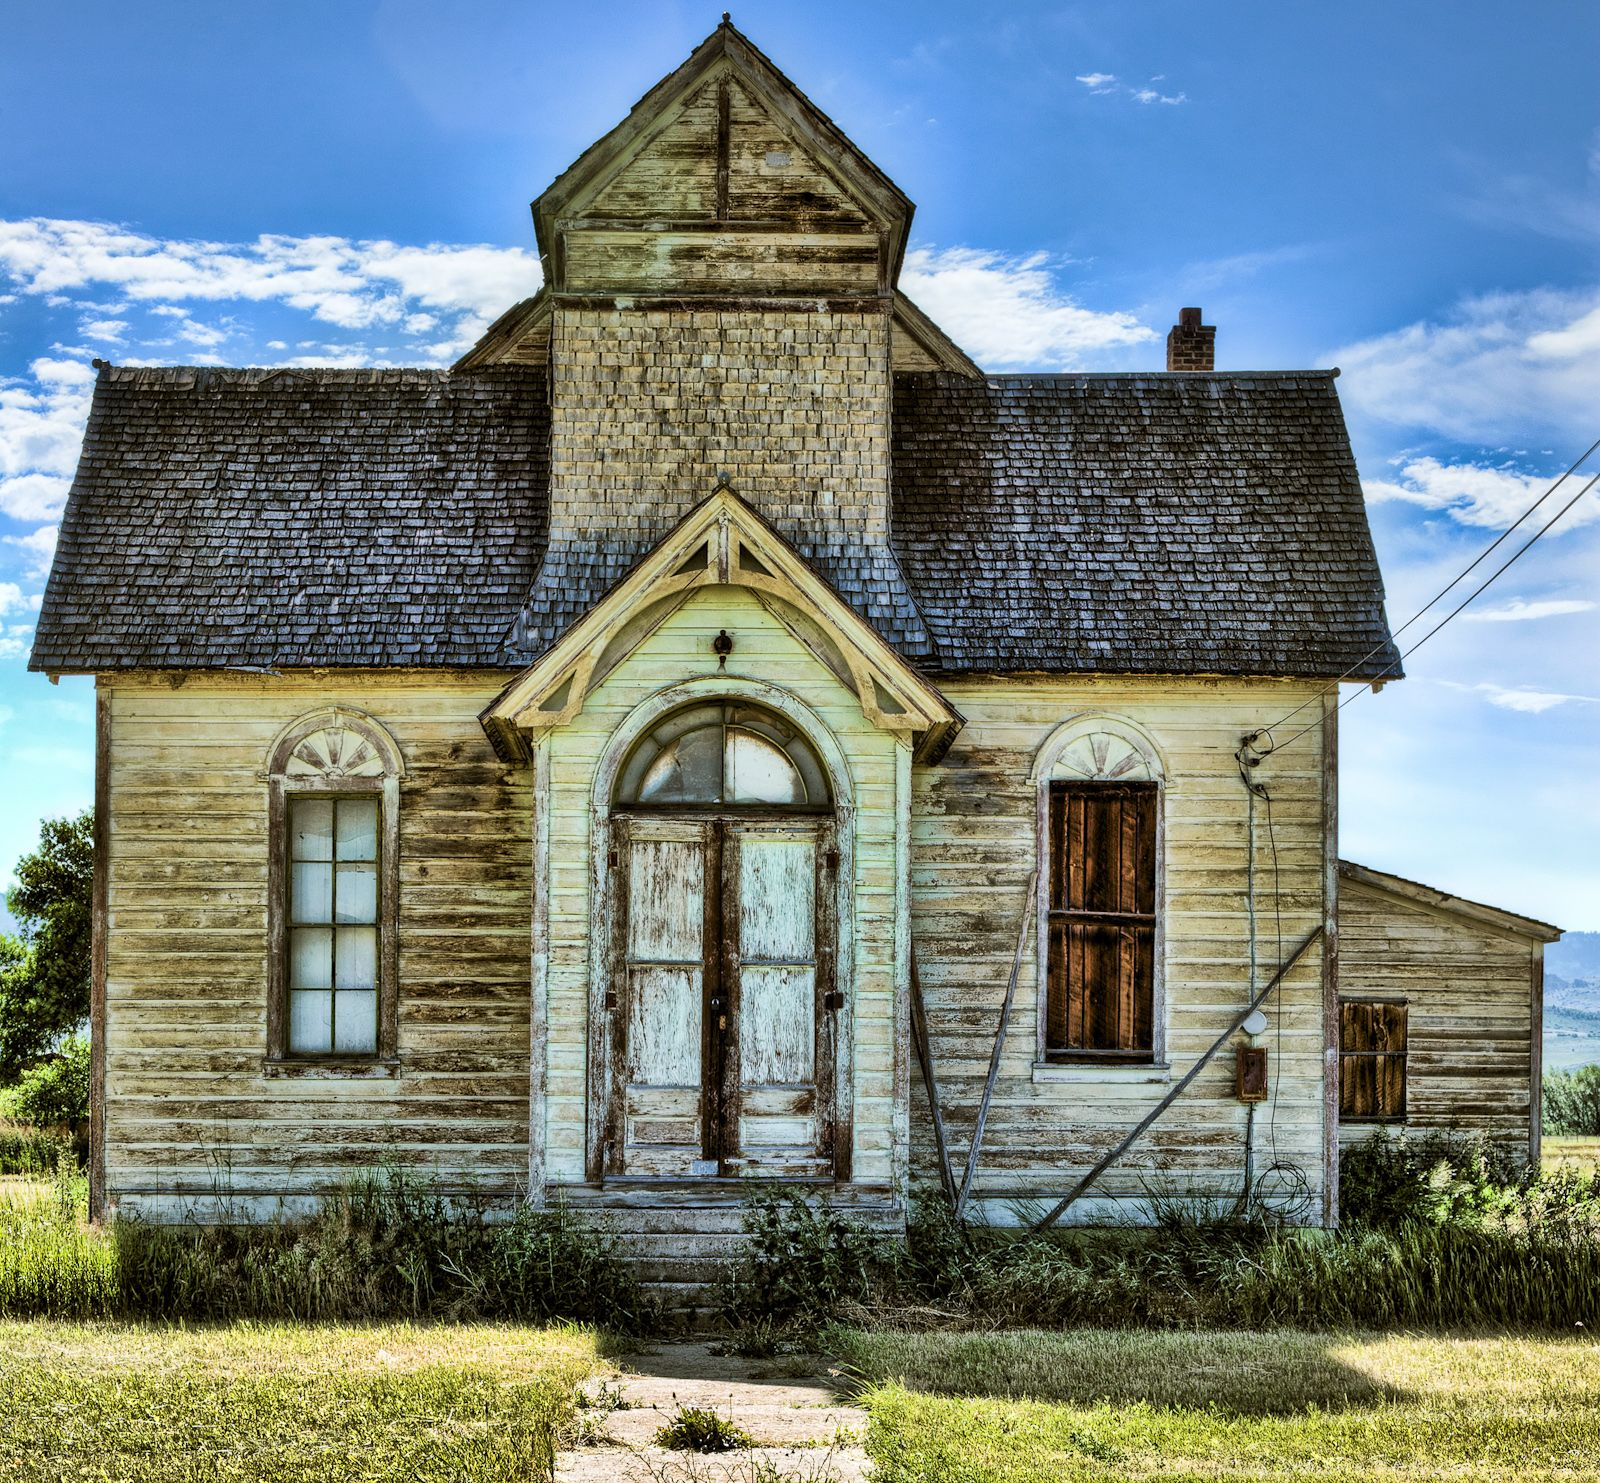 The Old Schoolhouse | Old buildings, Abandoned houses, Old school house